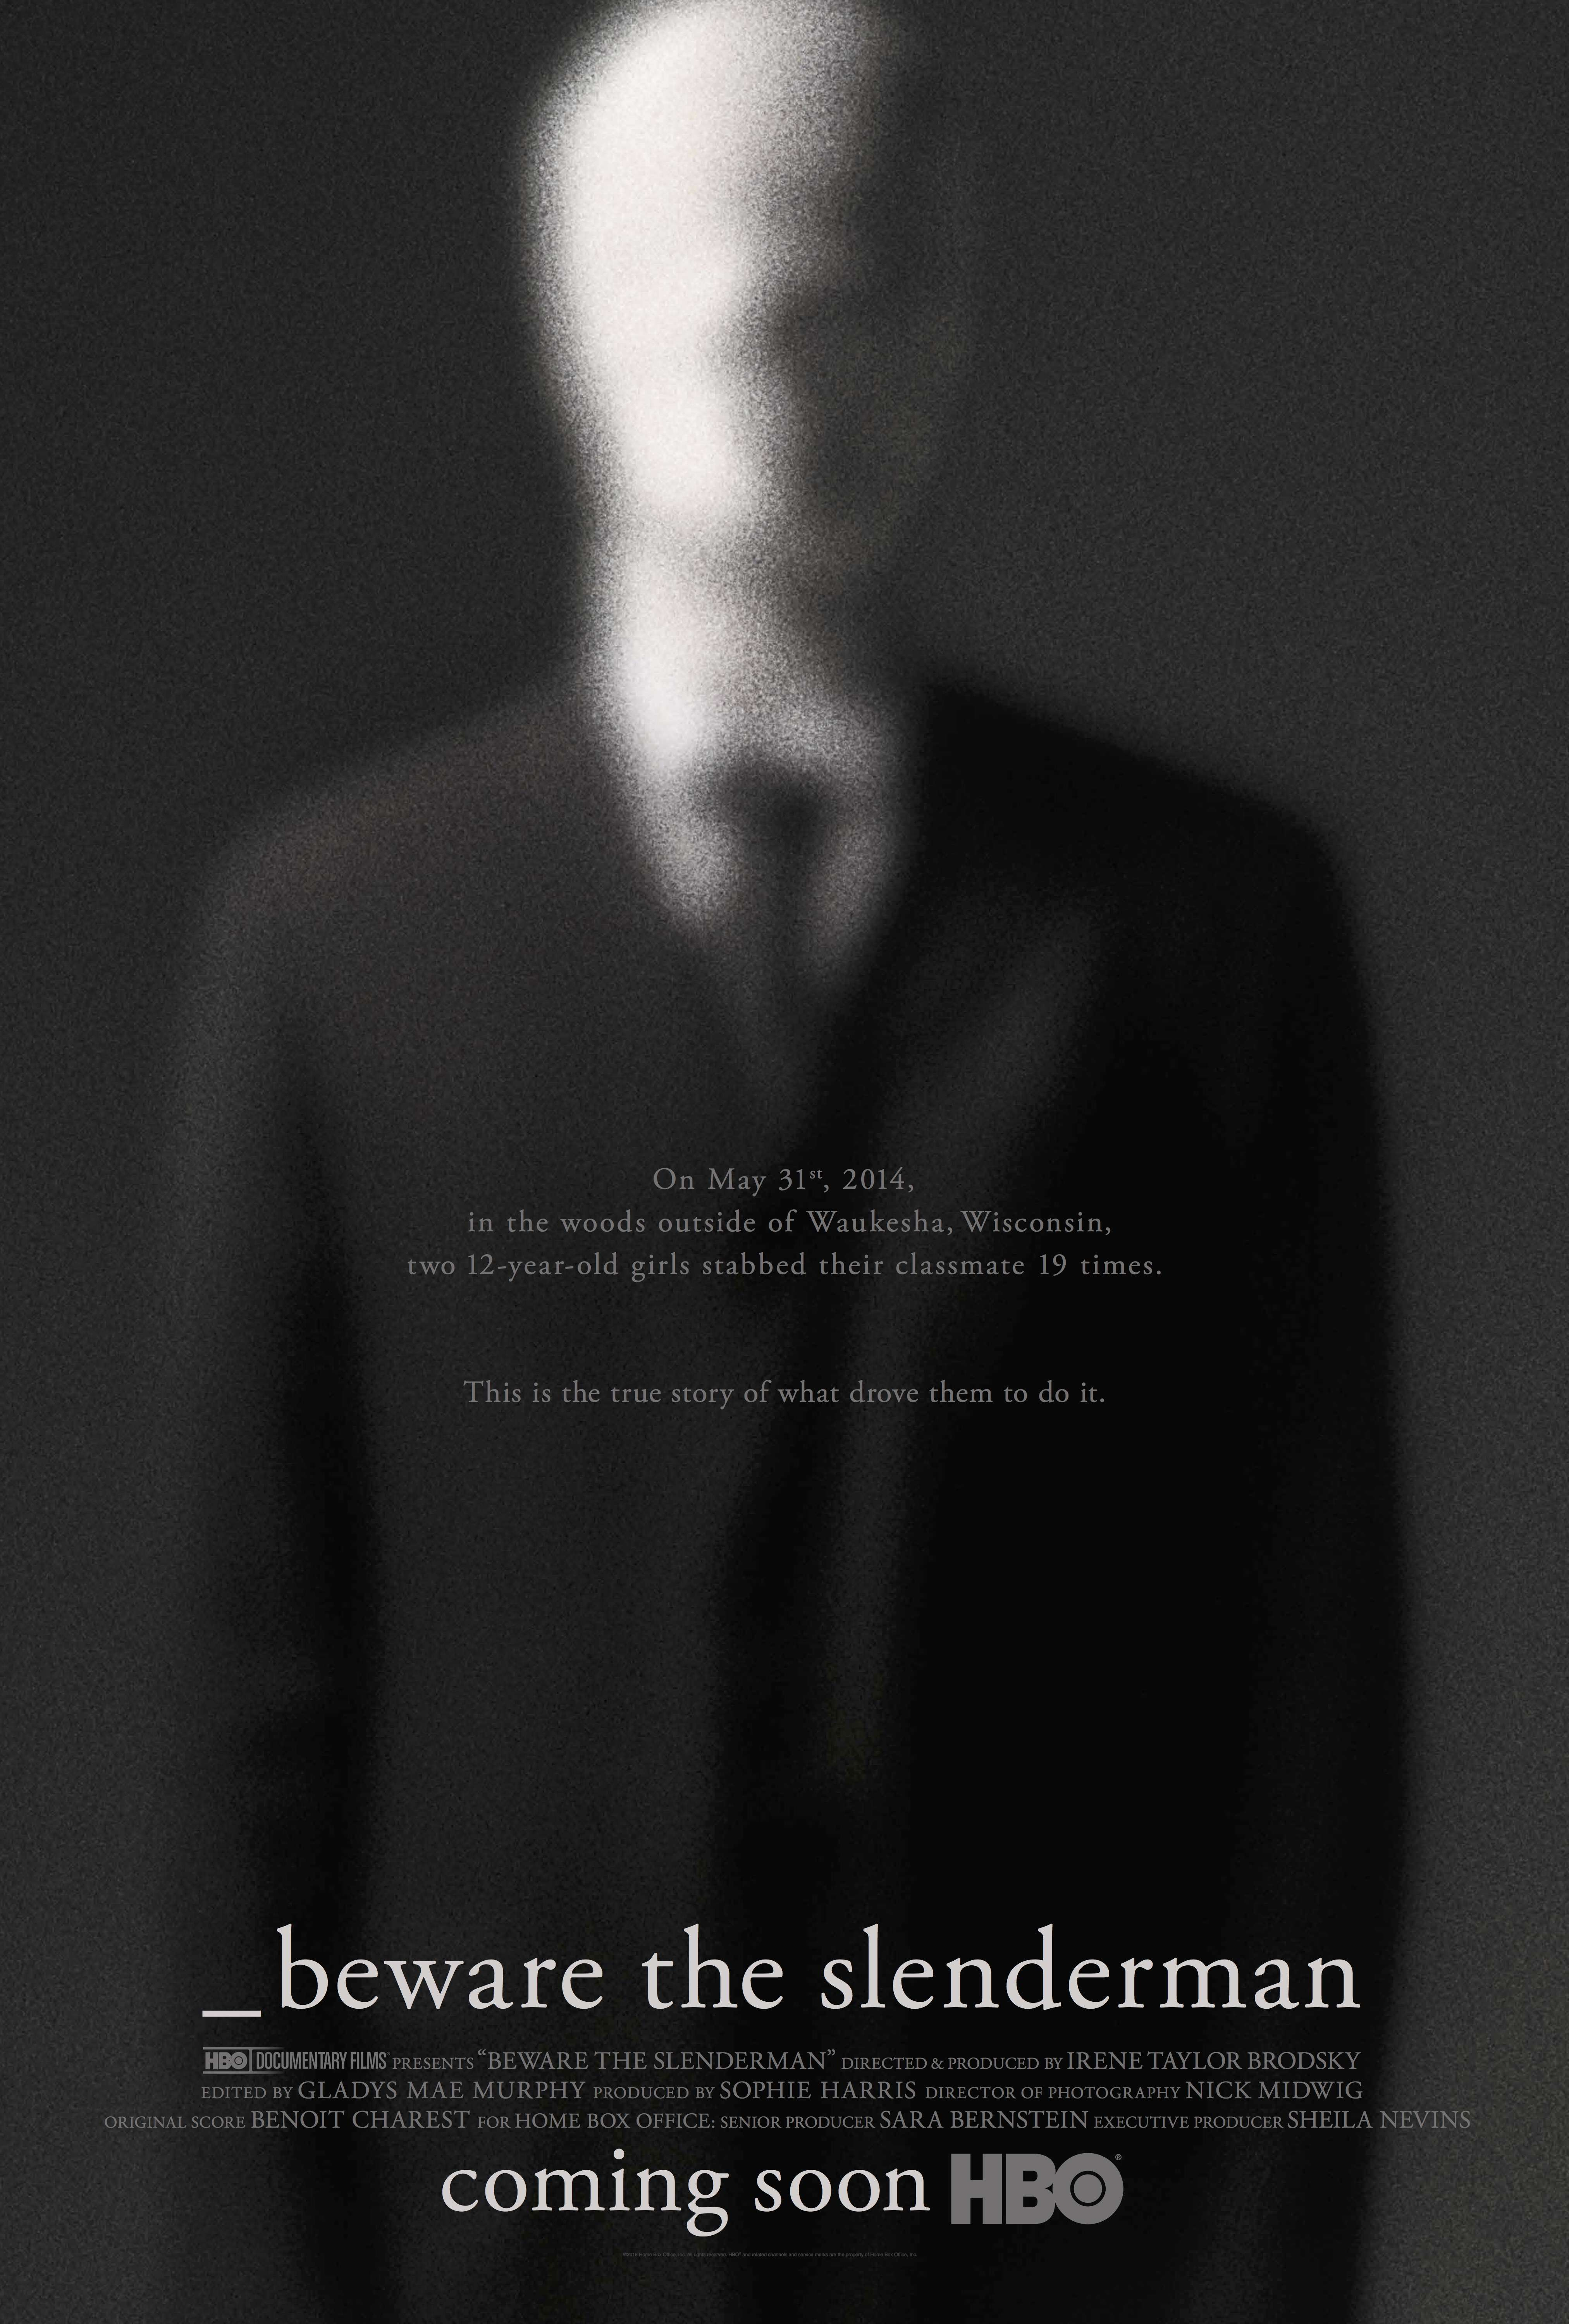 beware the slenderman Slenderman Killings Documentary Could Be The Next Making A Murderer